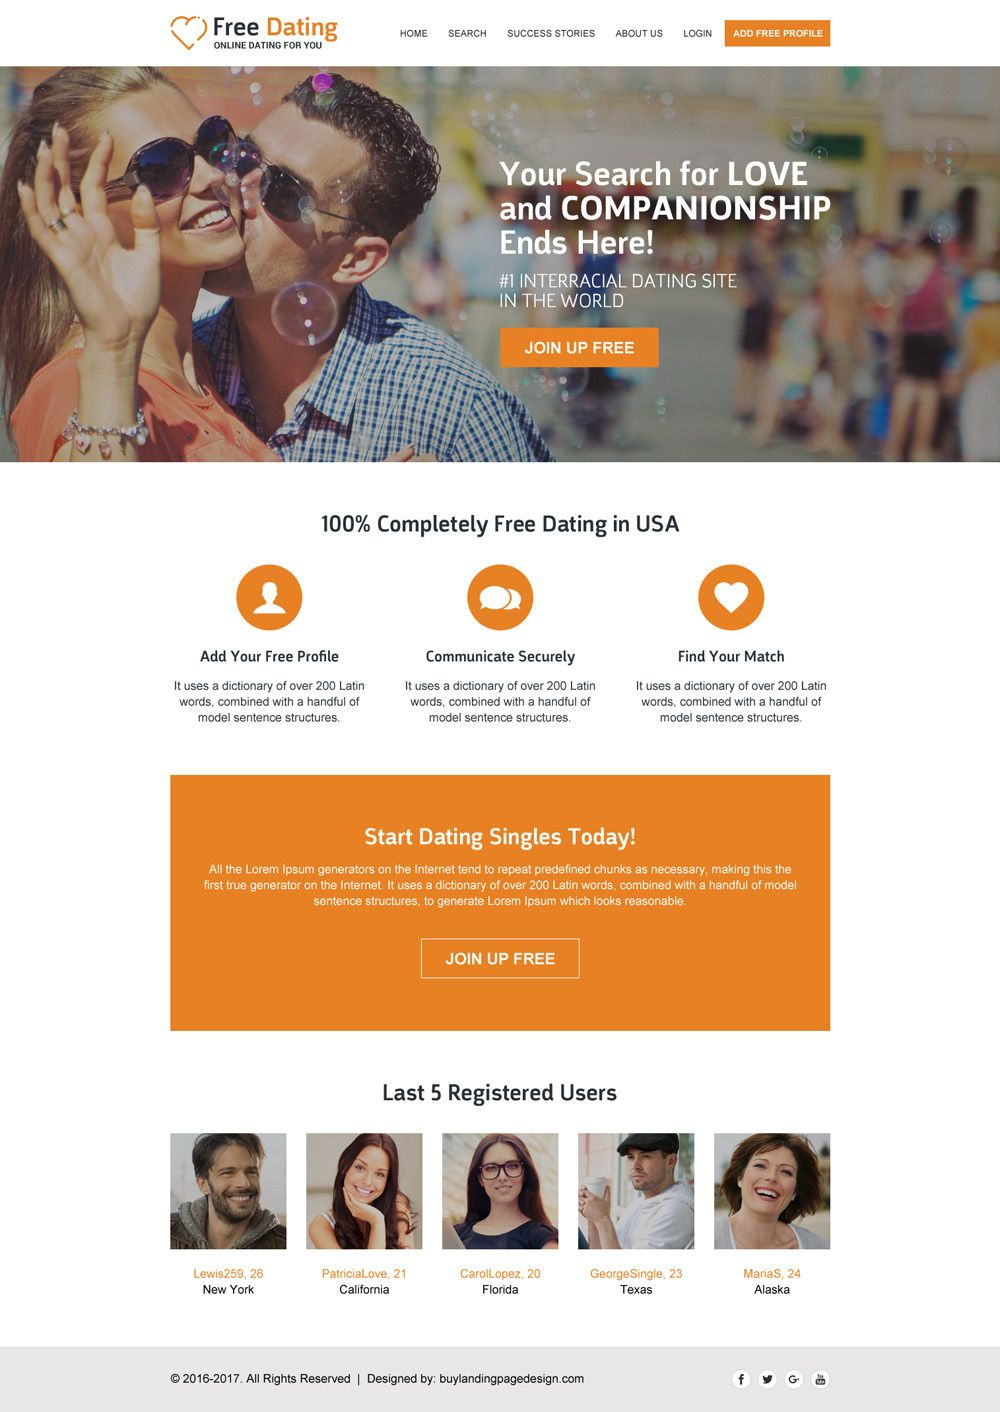 Dating webside design